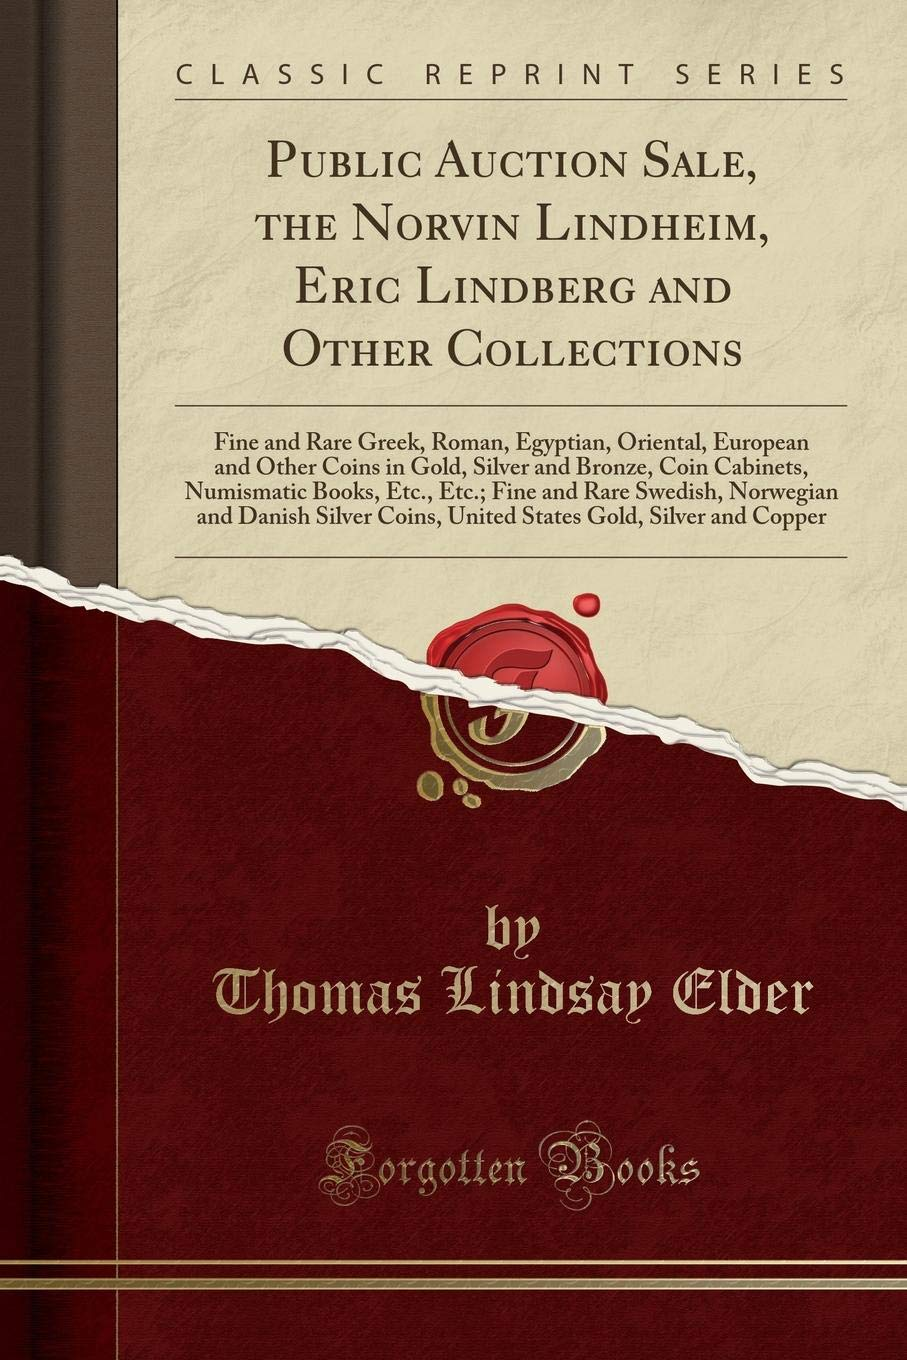 Download Public Auction Sale, the Norvin Lindheim, Eric Lindberg and Other Collections: Fine and Rare Greek, Roman, Egyptian, Oriental, European and Other ... Etc., Etc.; Fine and Rare Swedish, Norwegi PDF